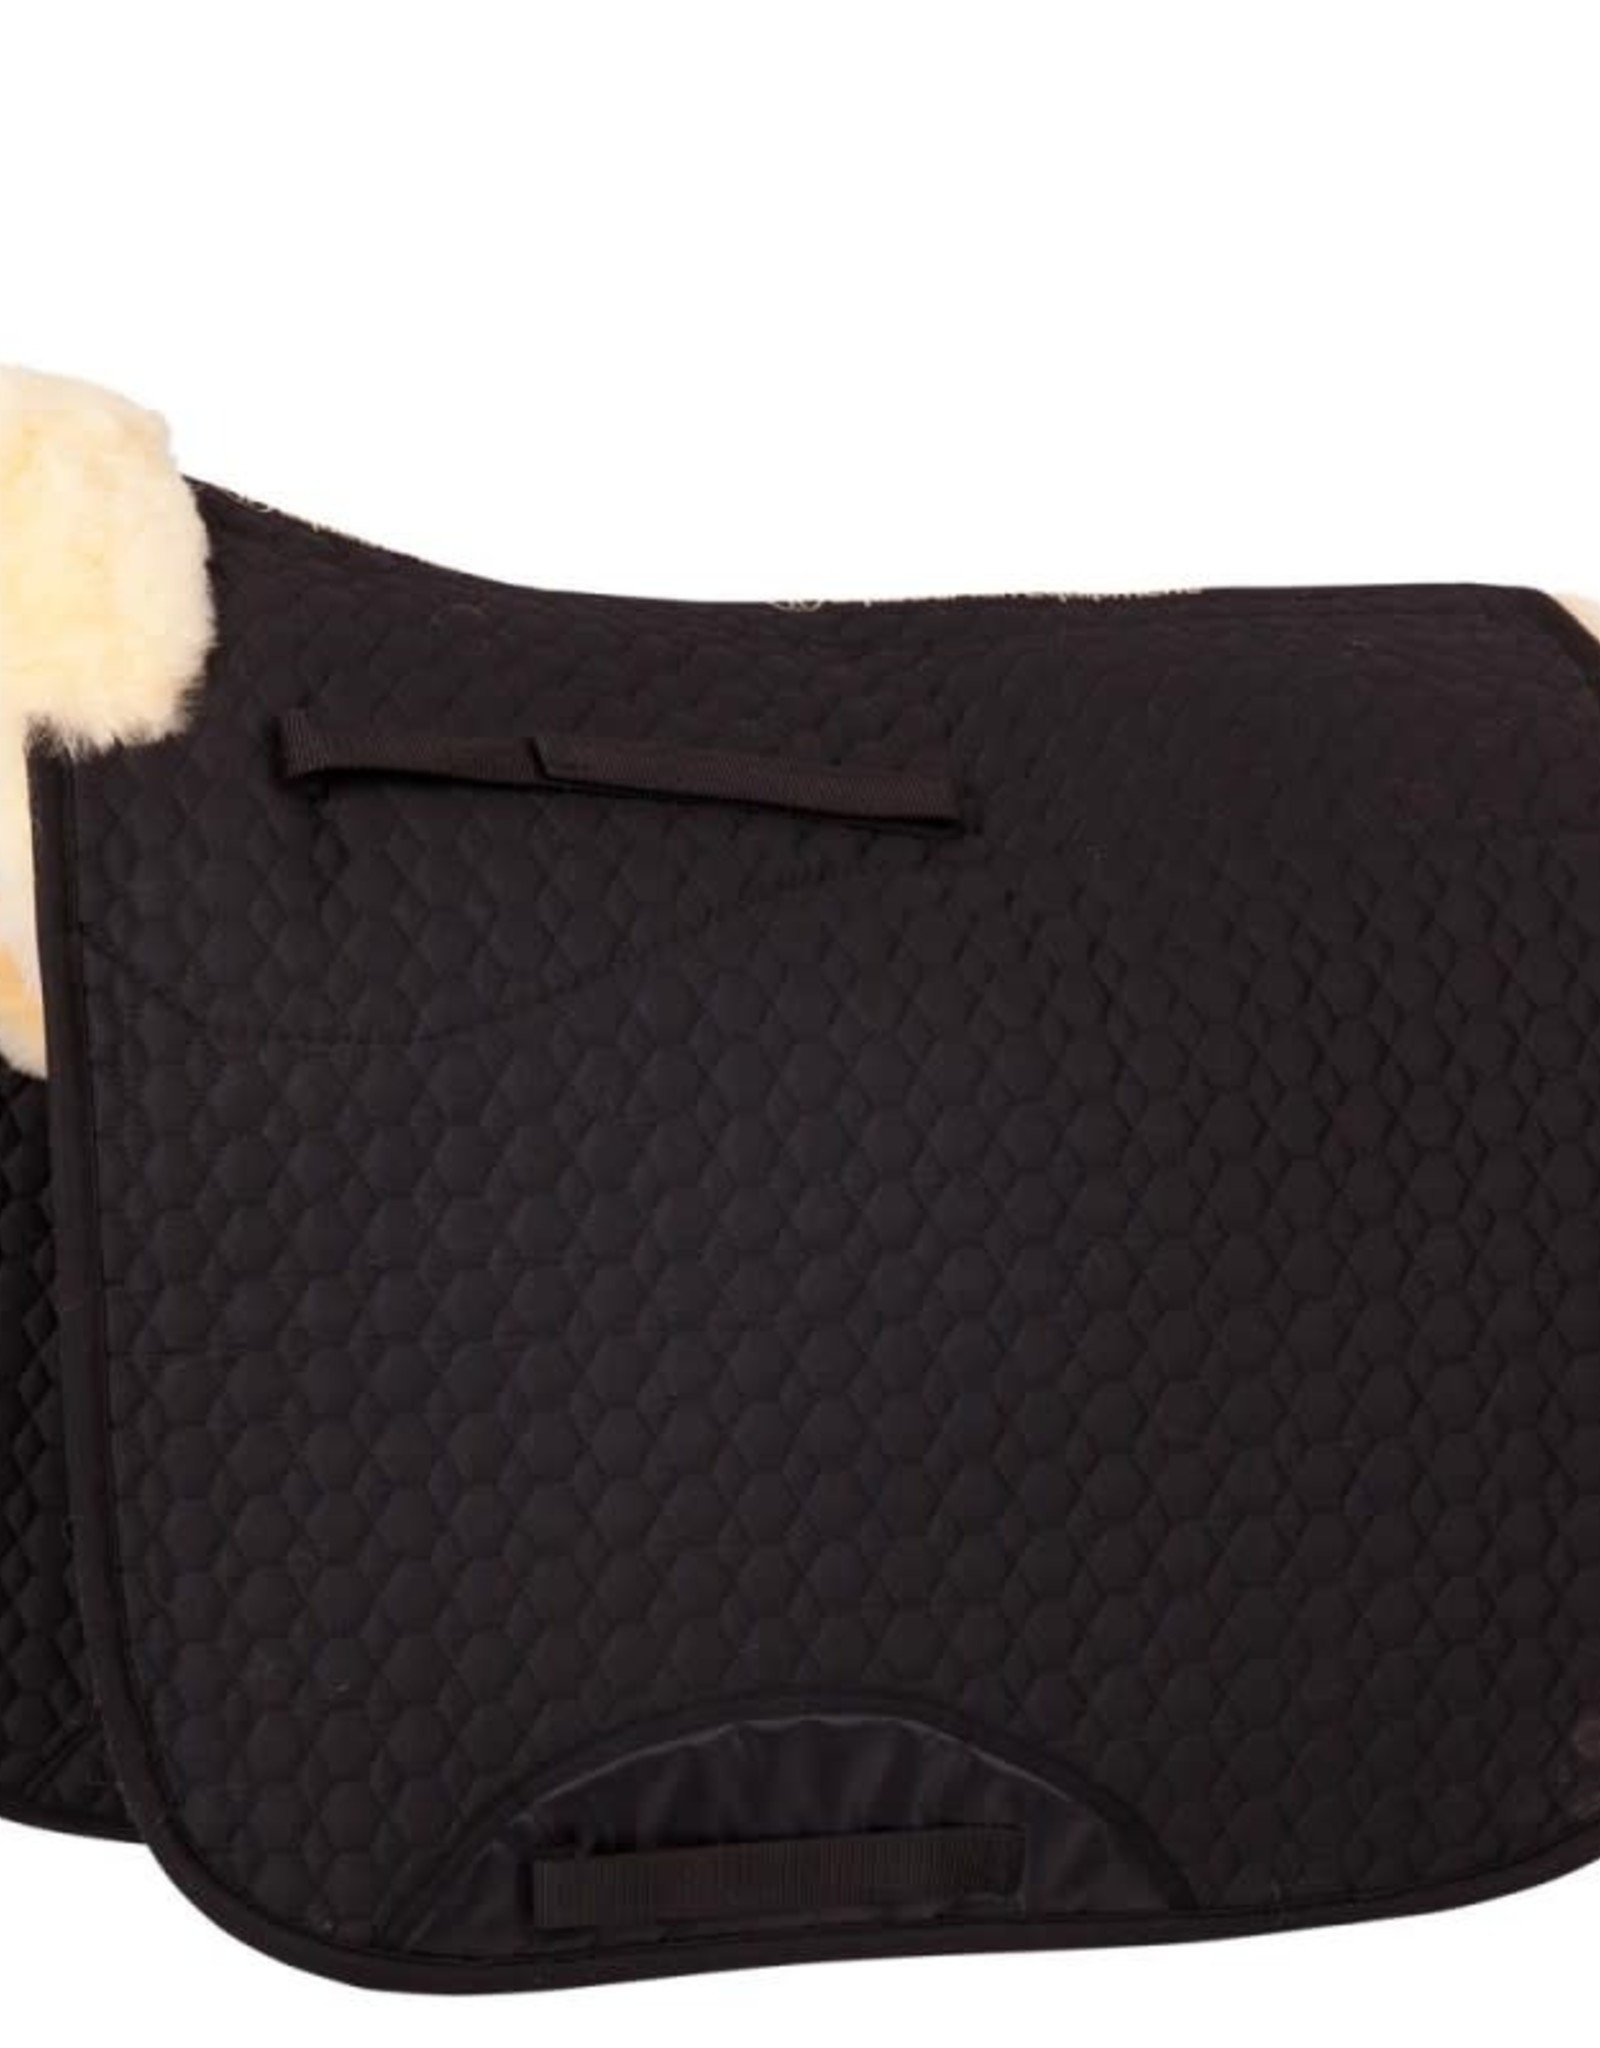 BR Saddle Pad Spinal Clearance Dressage